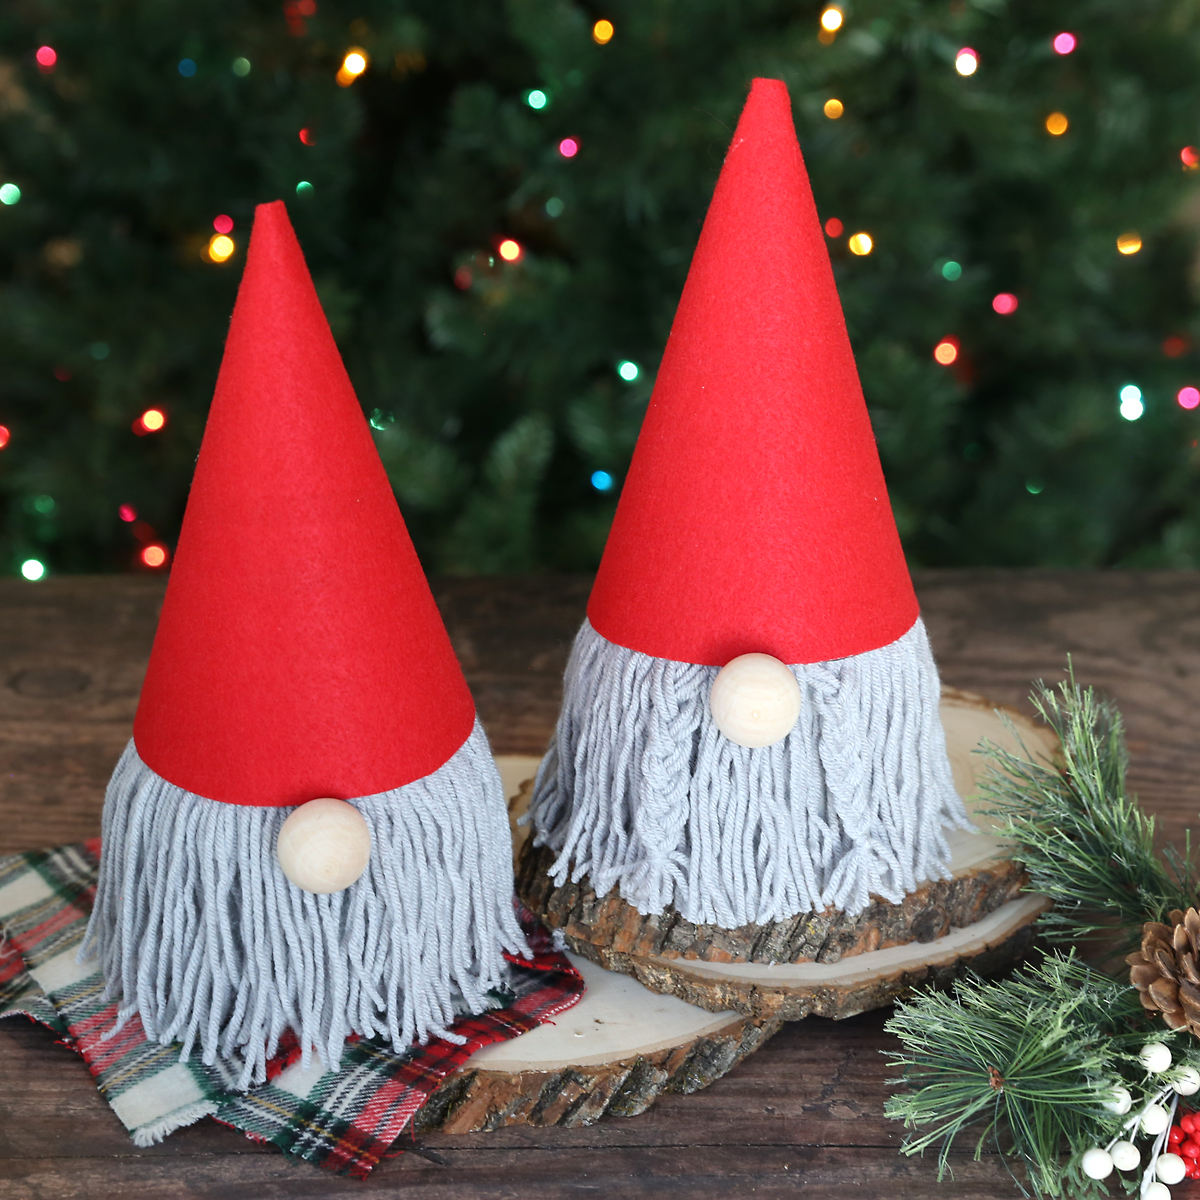 Christmas gnomes made from toilet paper roll with yarn beard and red felt hat